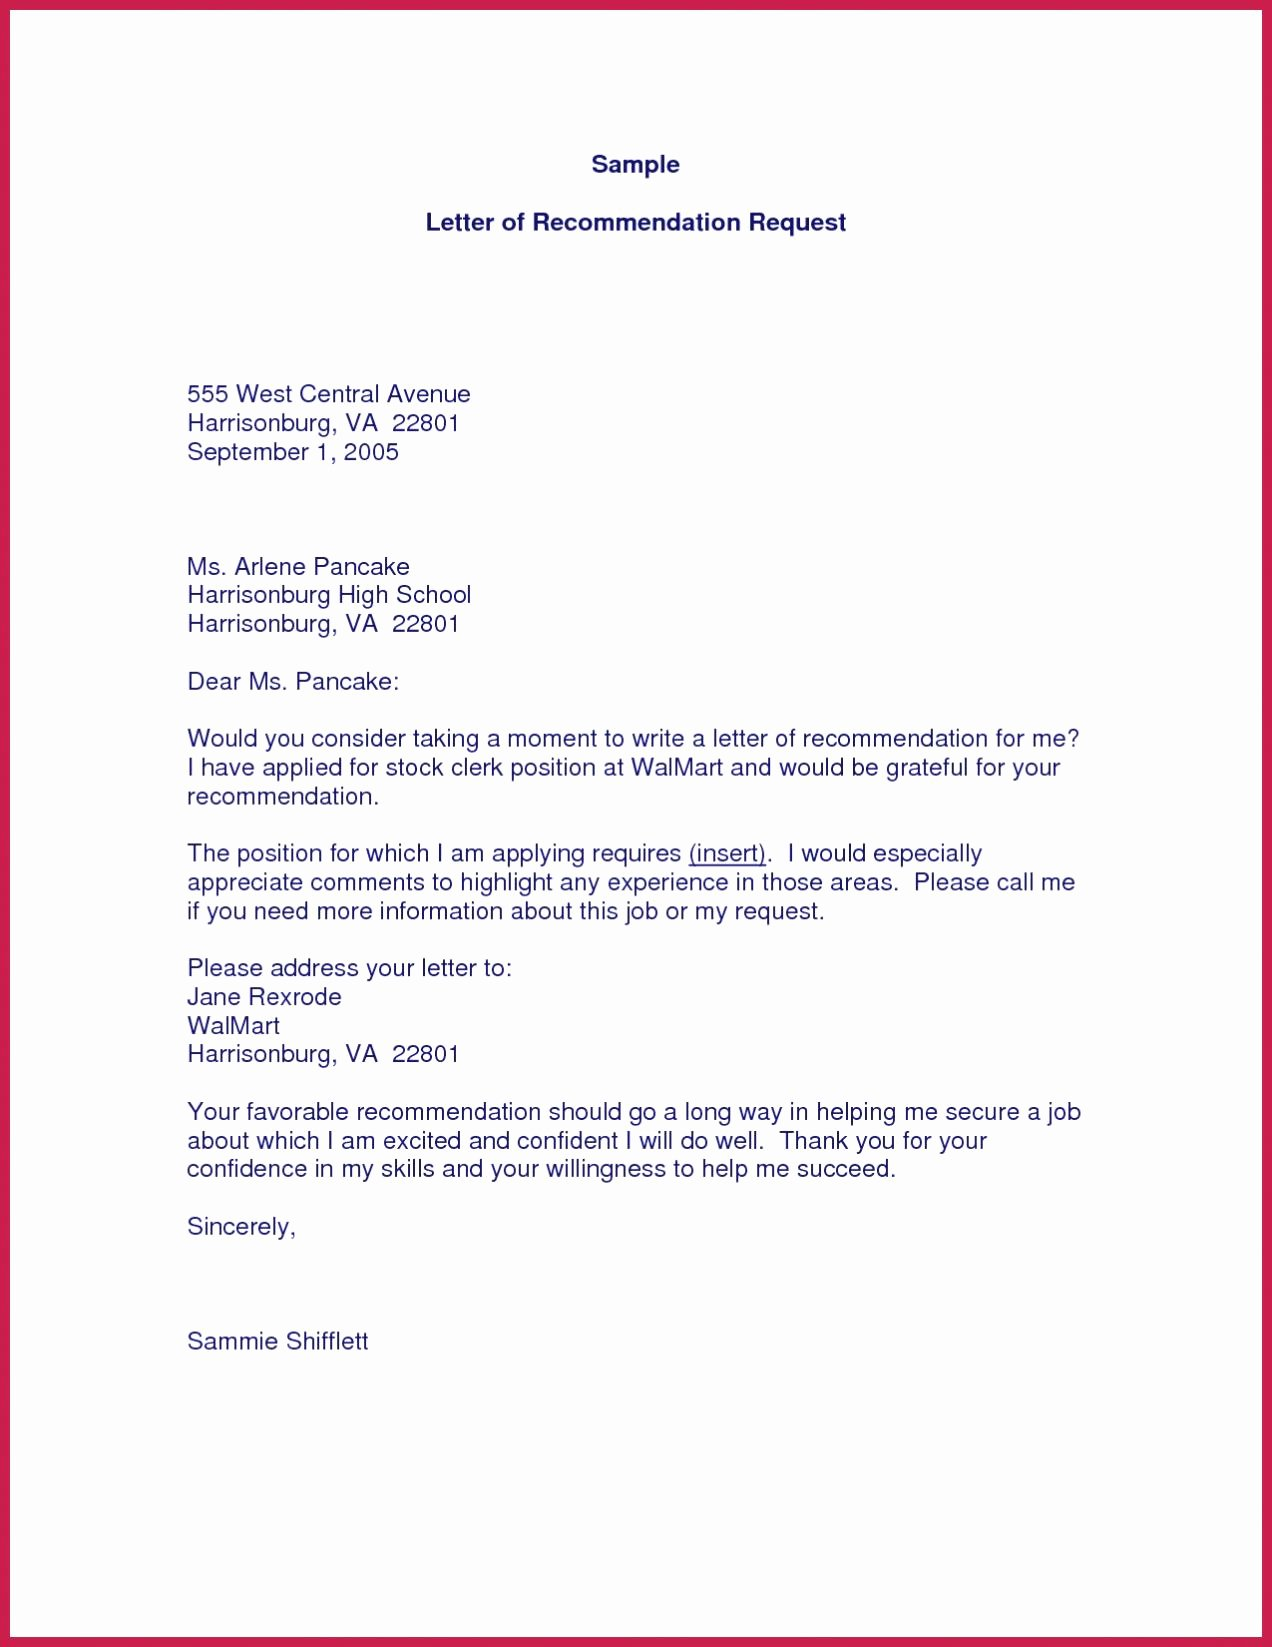 Sample Letter Of Recommendation Request Fresh 5 6 Sample Request Letter